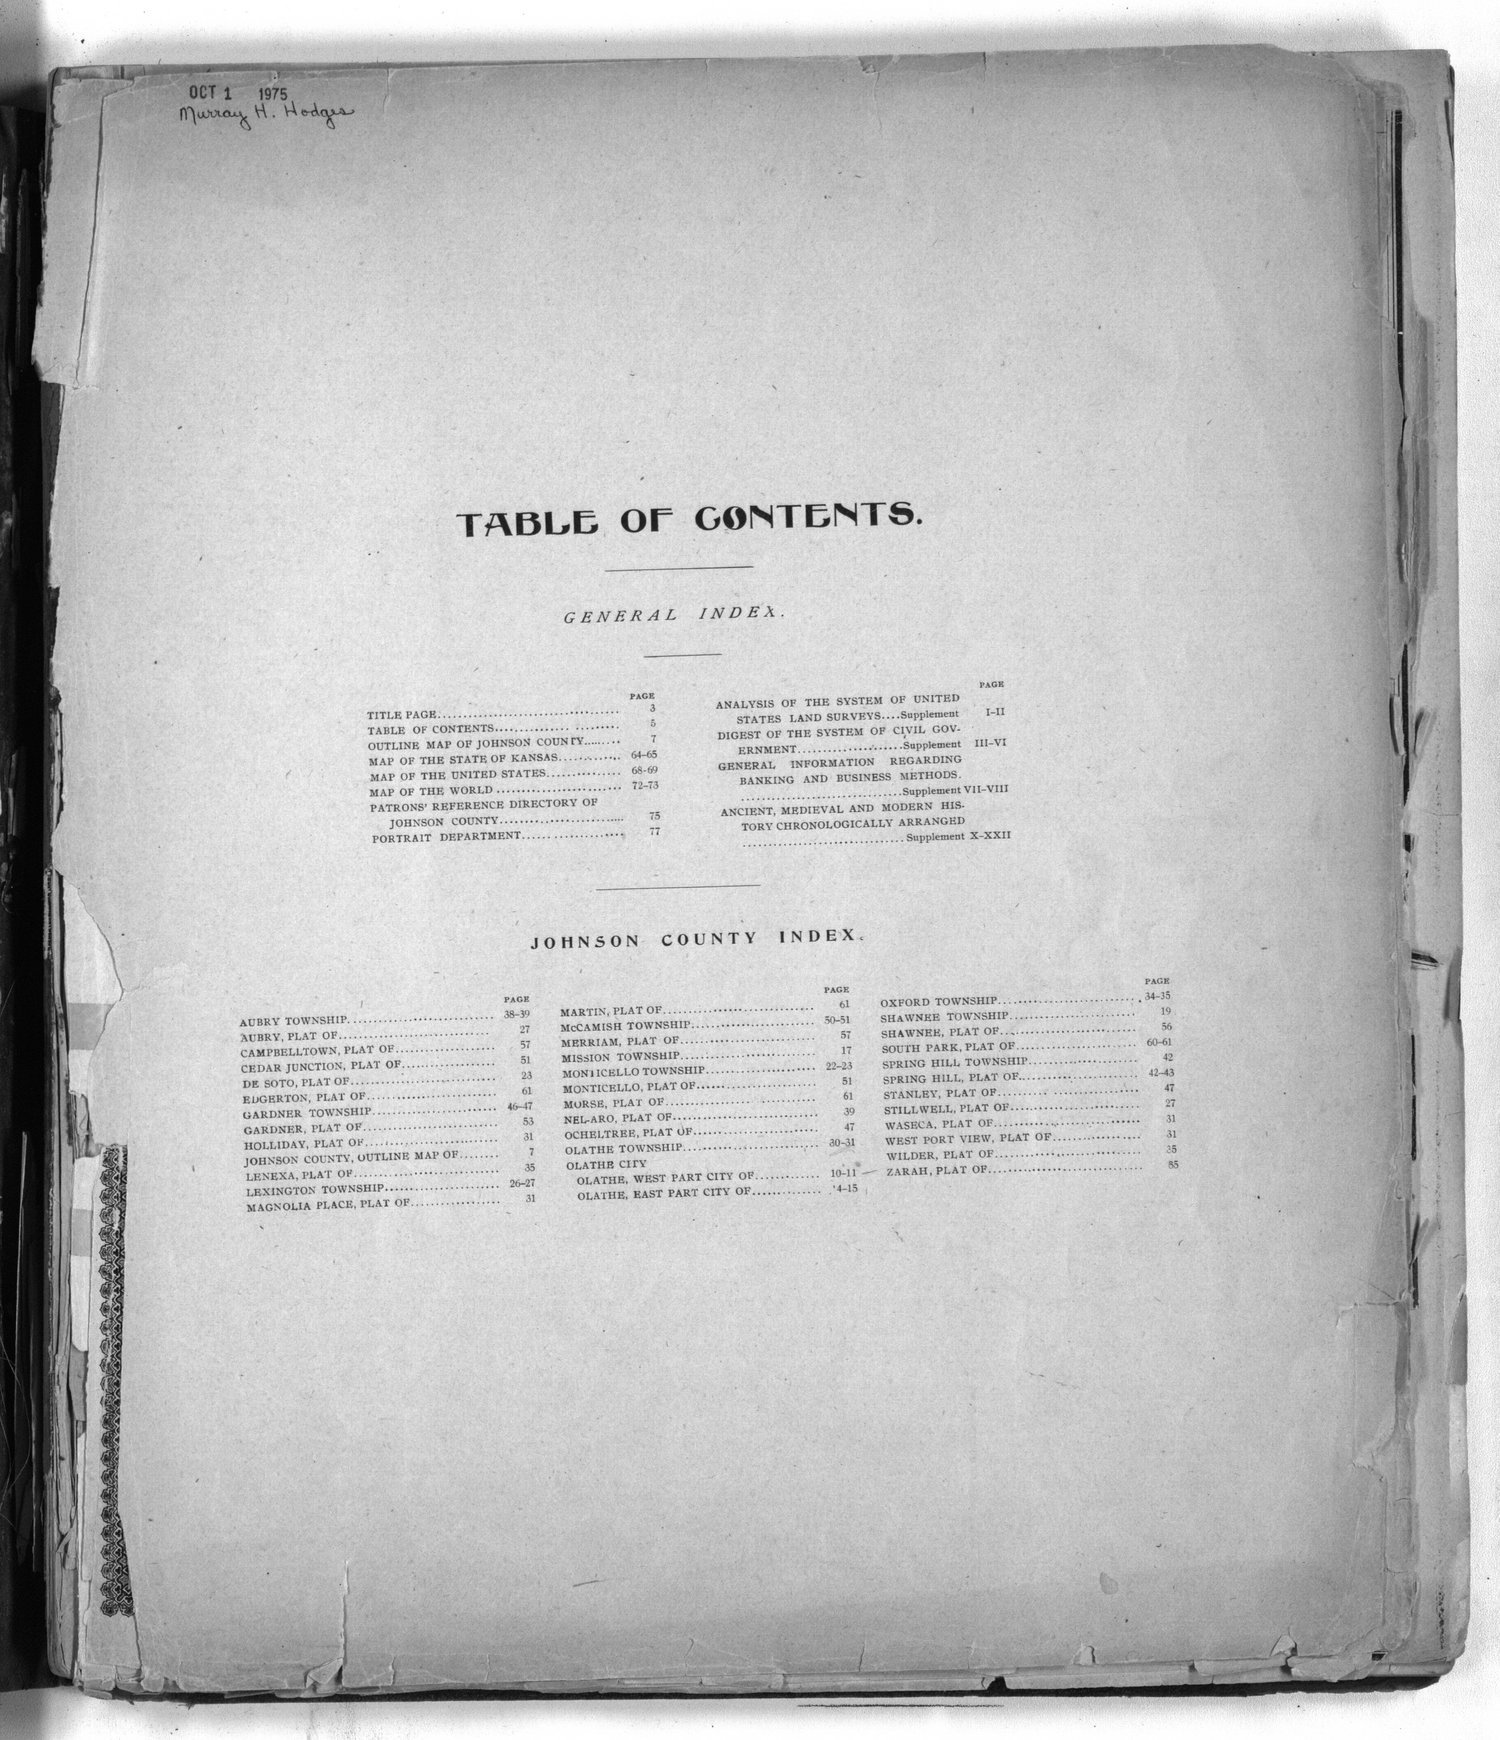 Standard atlas of Johnson County, Kansas - Table of contents